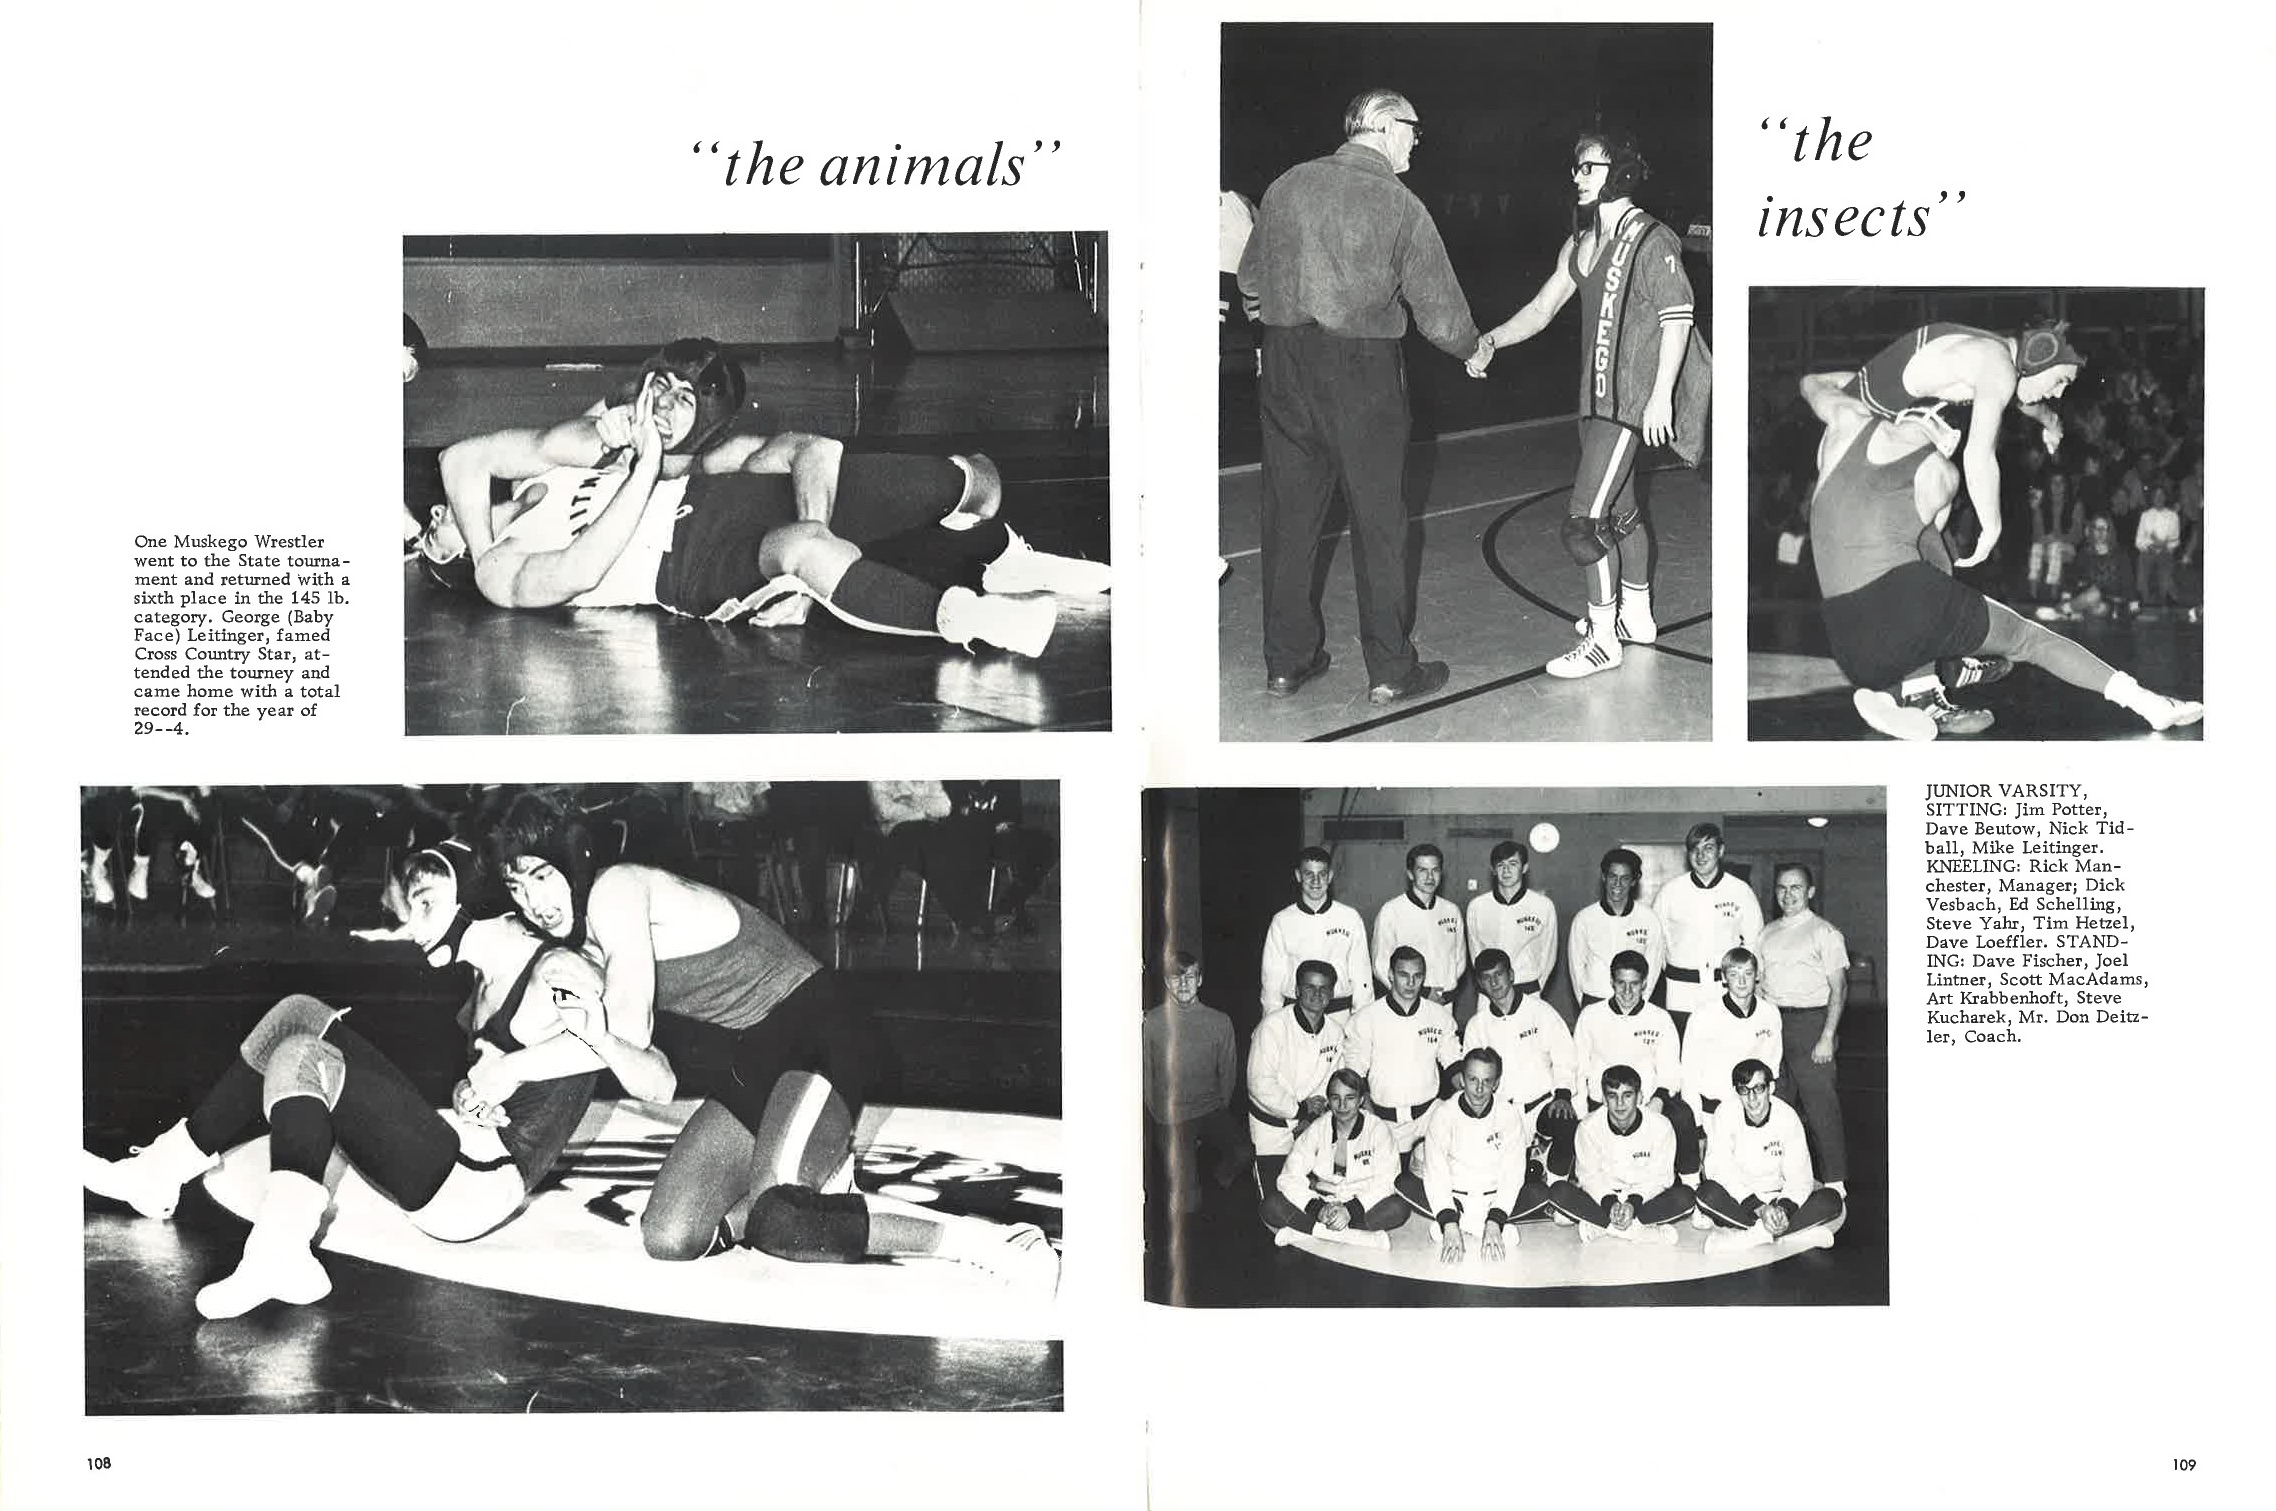 1970_Yearbook_108-109.jpg